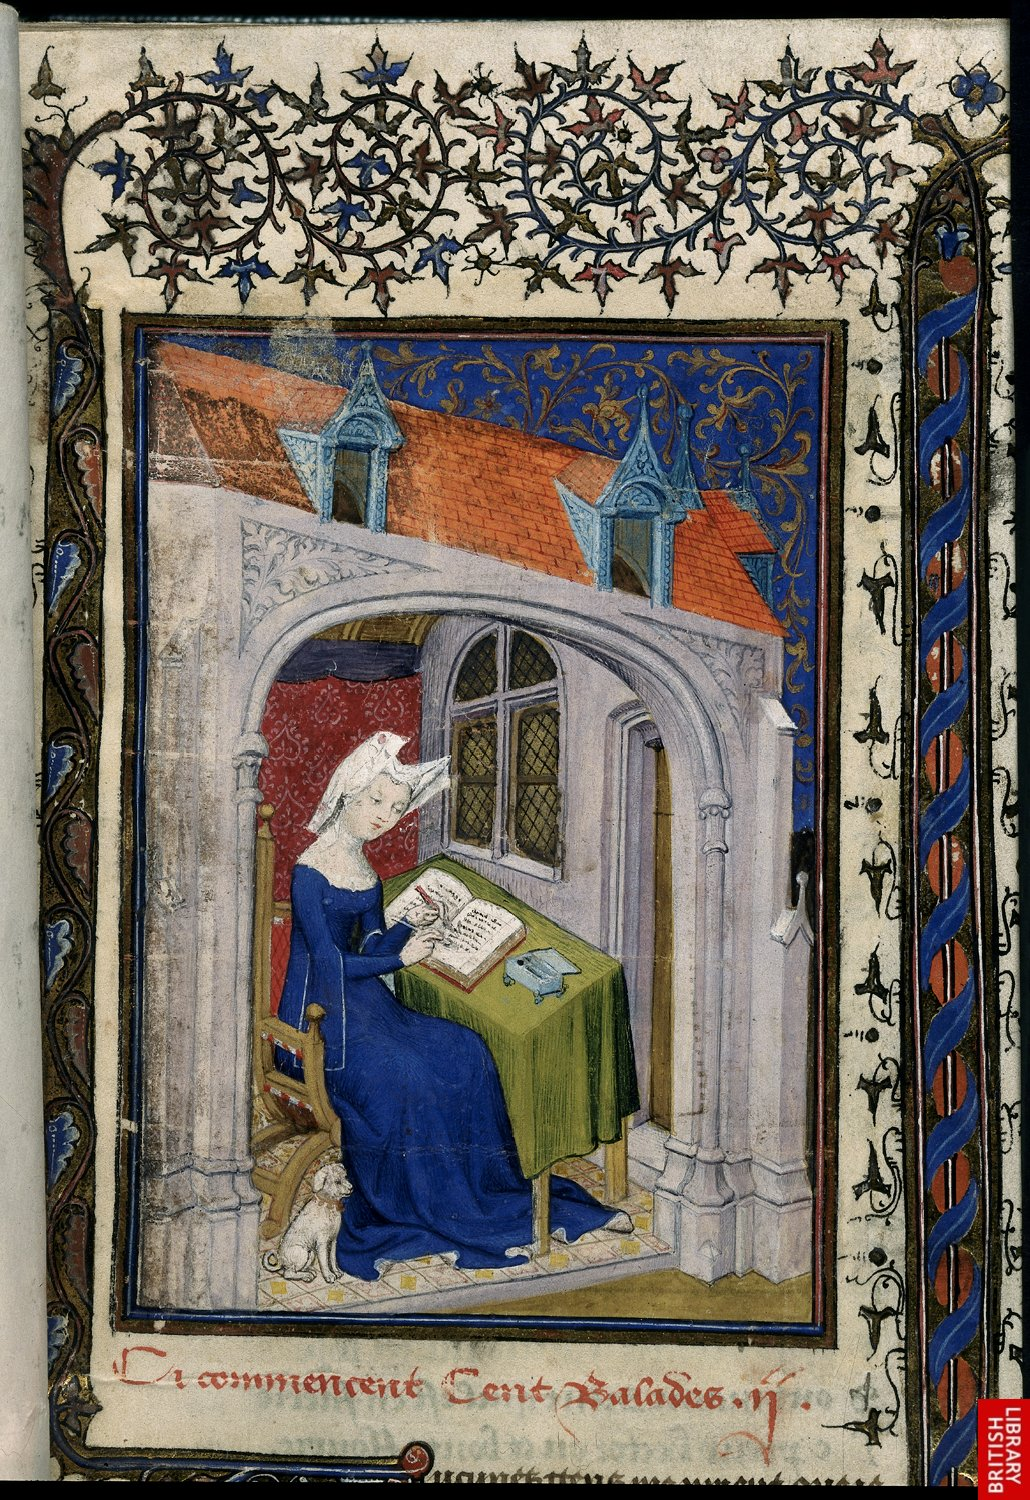 1410 - The Book of the Queen - Christine de Pizan in her study - by Master of the Cite Des Dames